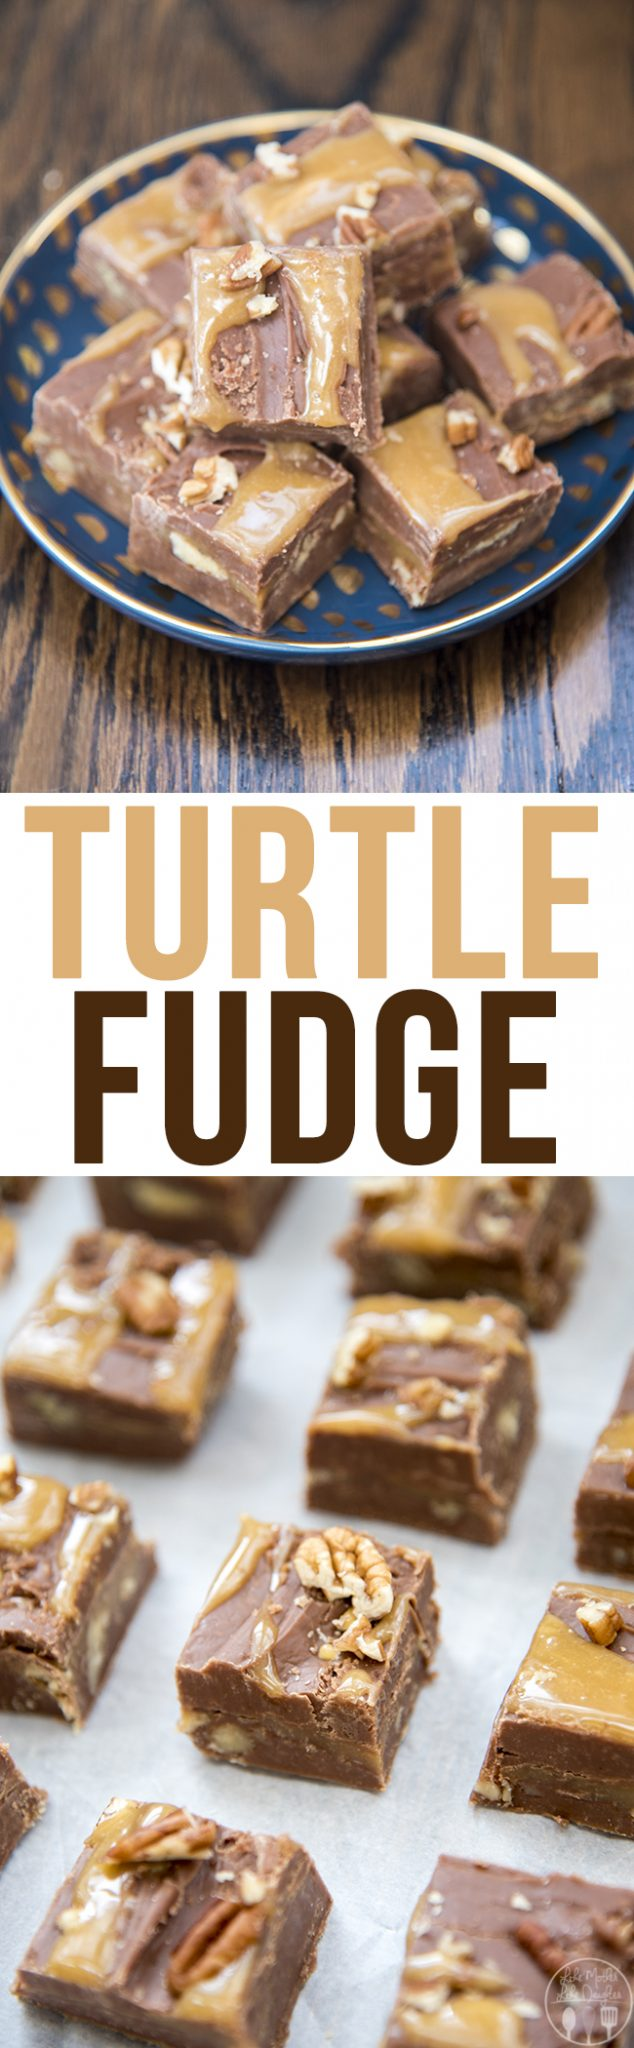 Turtle fudge is a creamy chocolate fudge with a caramel and pecan center! Its a delicious treat that everyone will love!